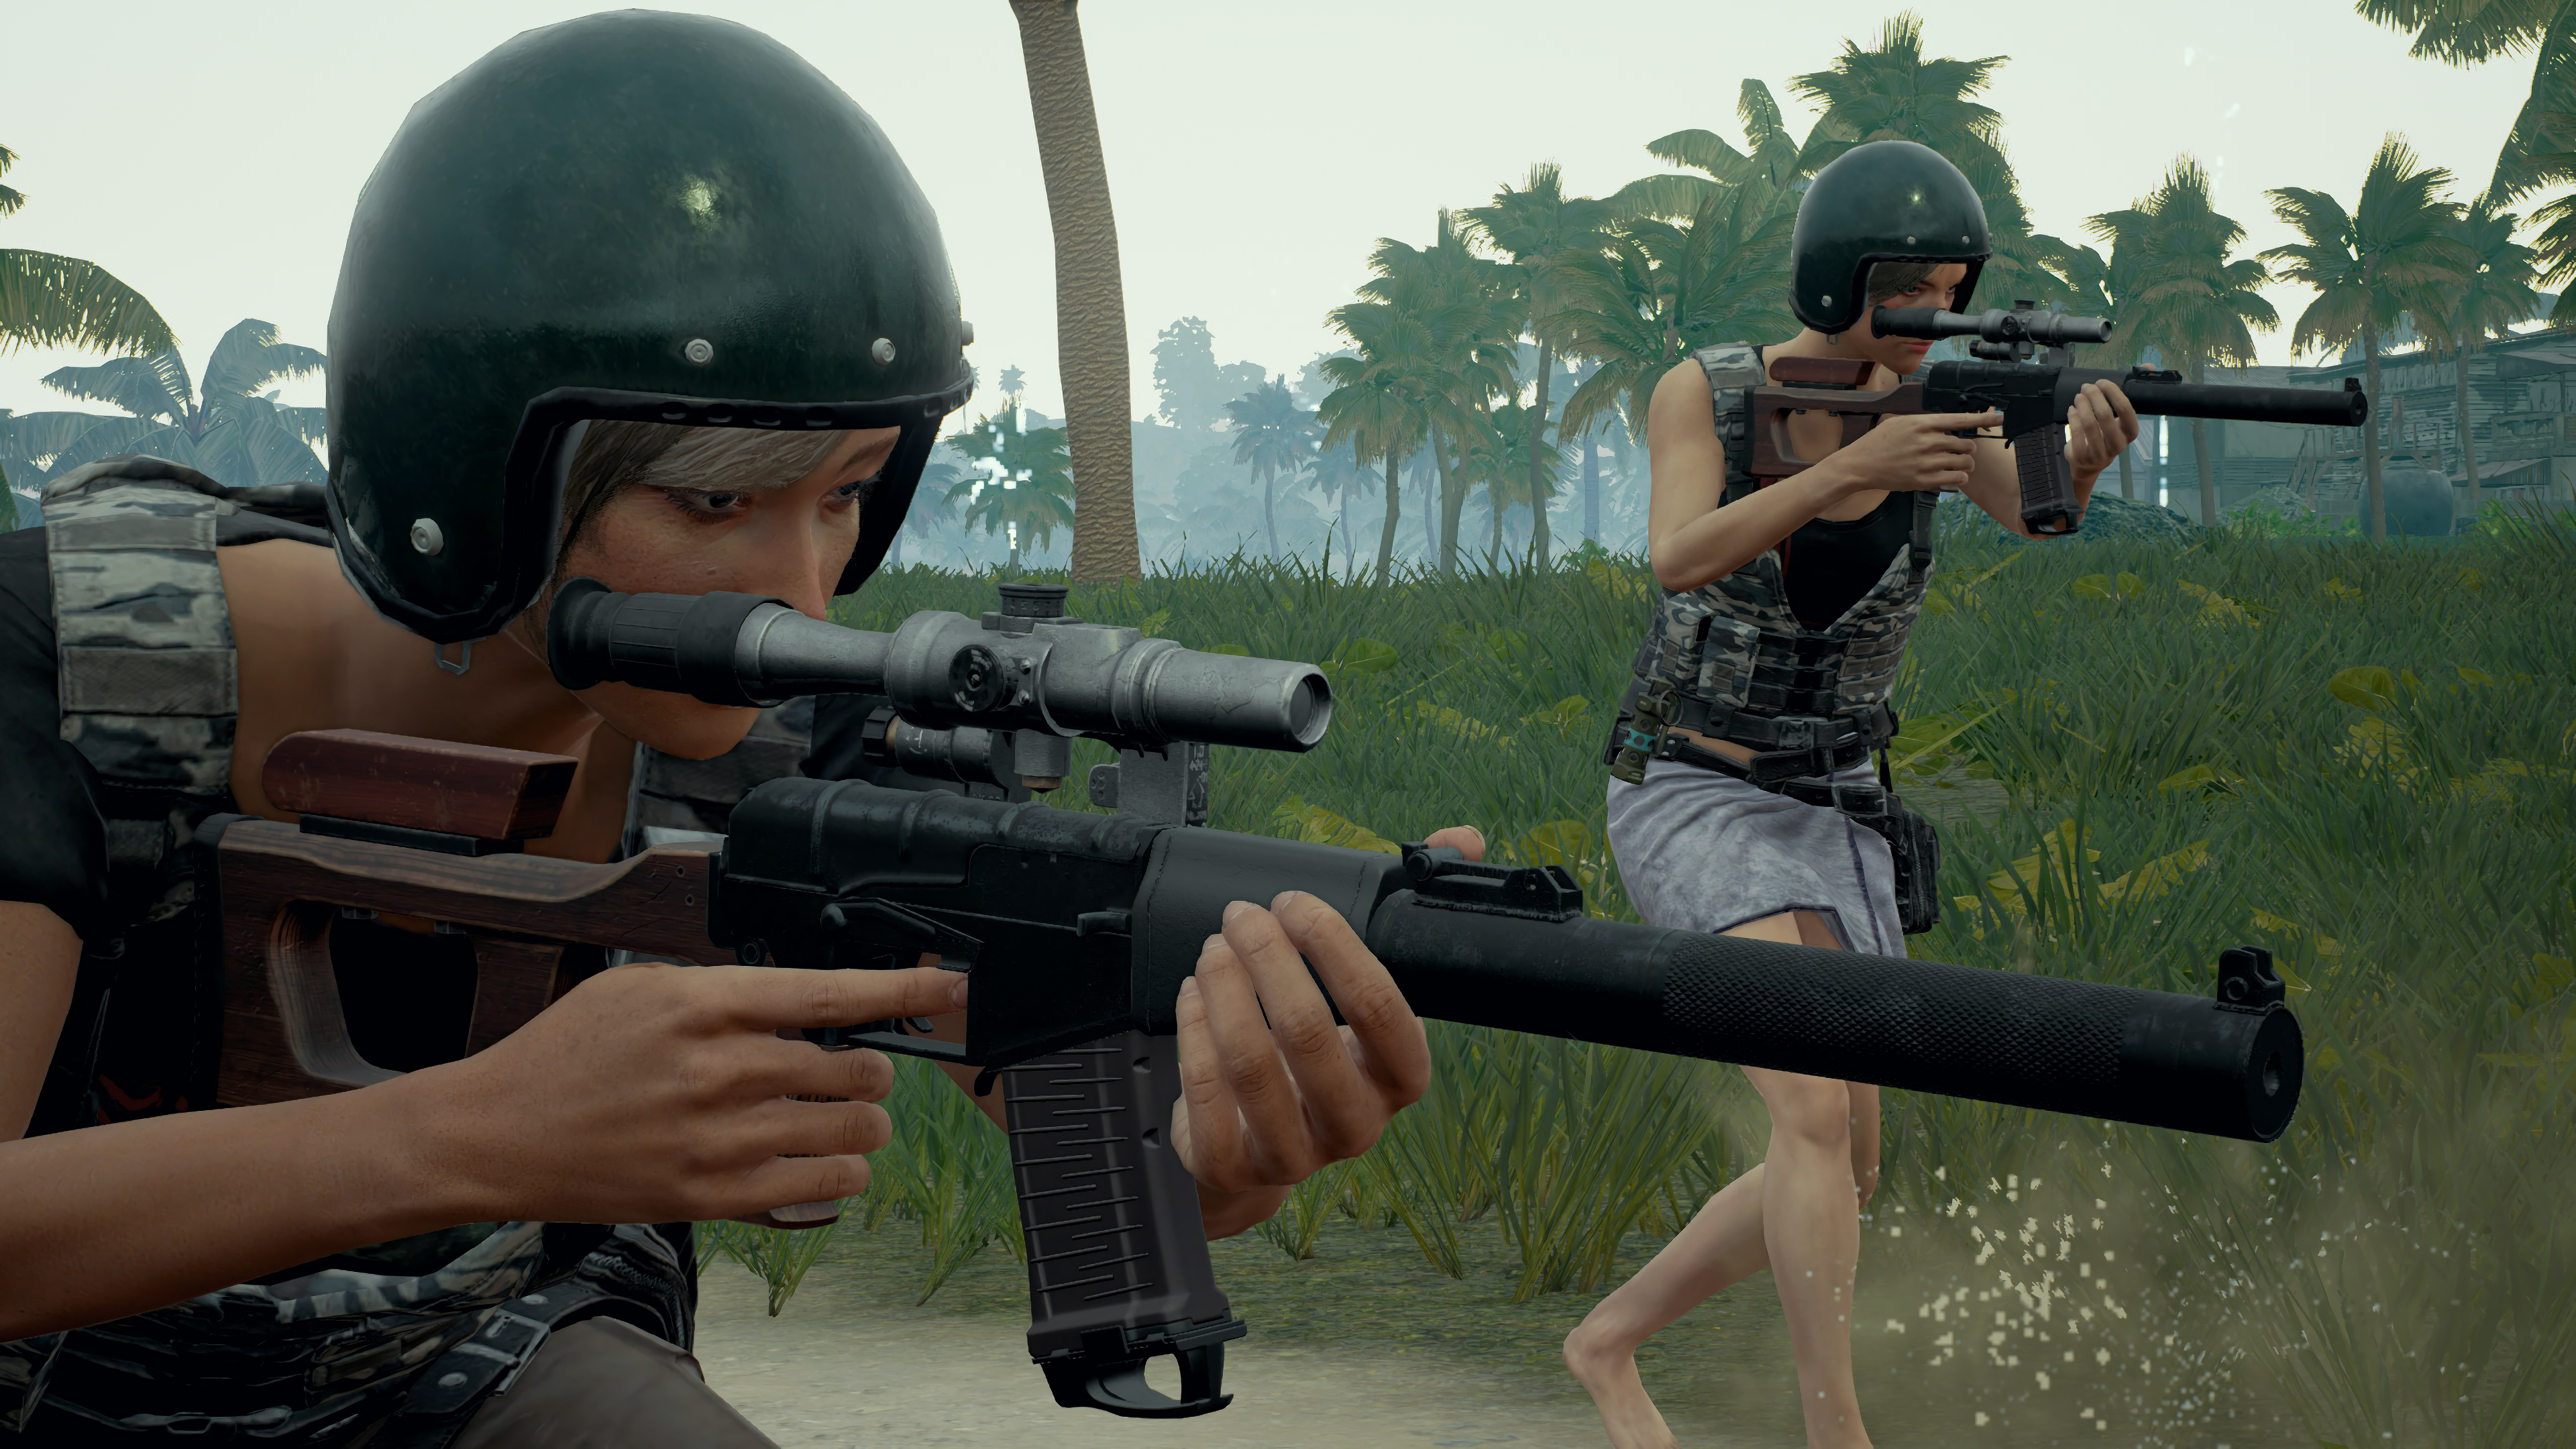 pubg assault rifle pubg playerunknown s battlegrounds 4k wallpaper 1544827755 - PUBG Assault Rifle PUBG PlayerUnknown's  Battlegrounds 4K Wallpaper - PlayerUnknown's Battlegrounds (PUBG) 4k wallpapers